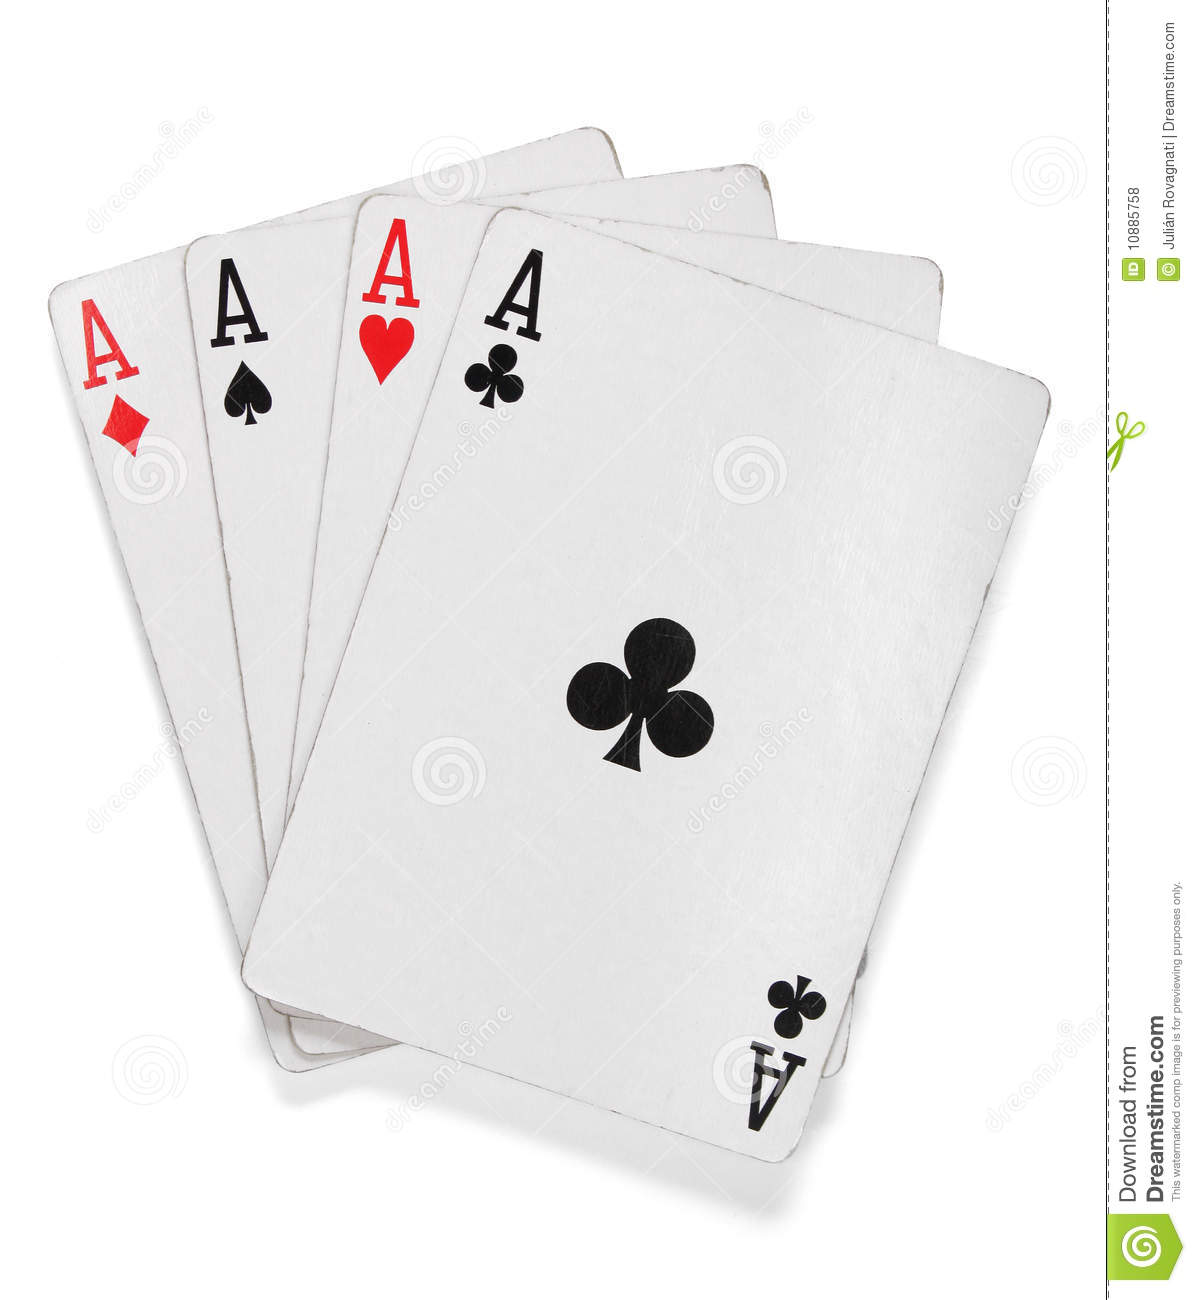 picture of aces cards poker